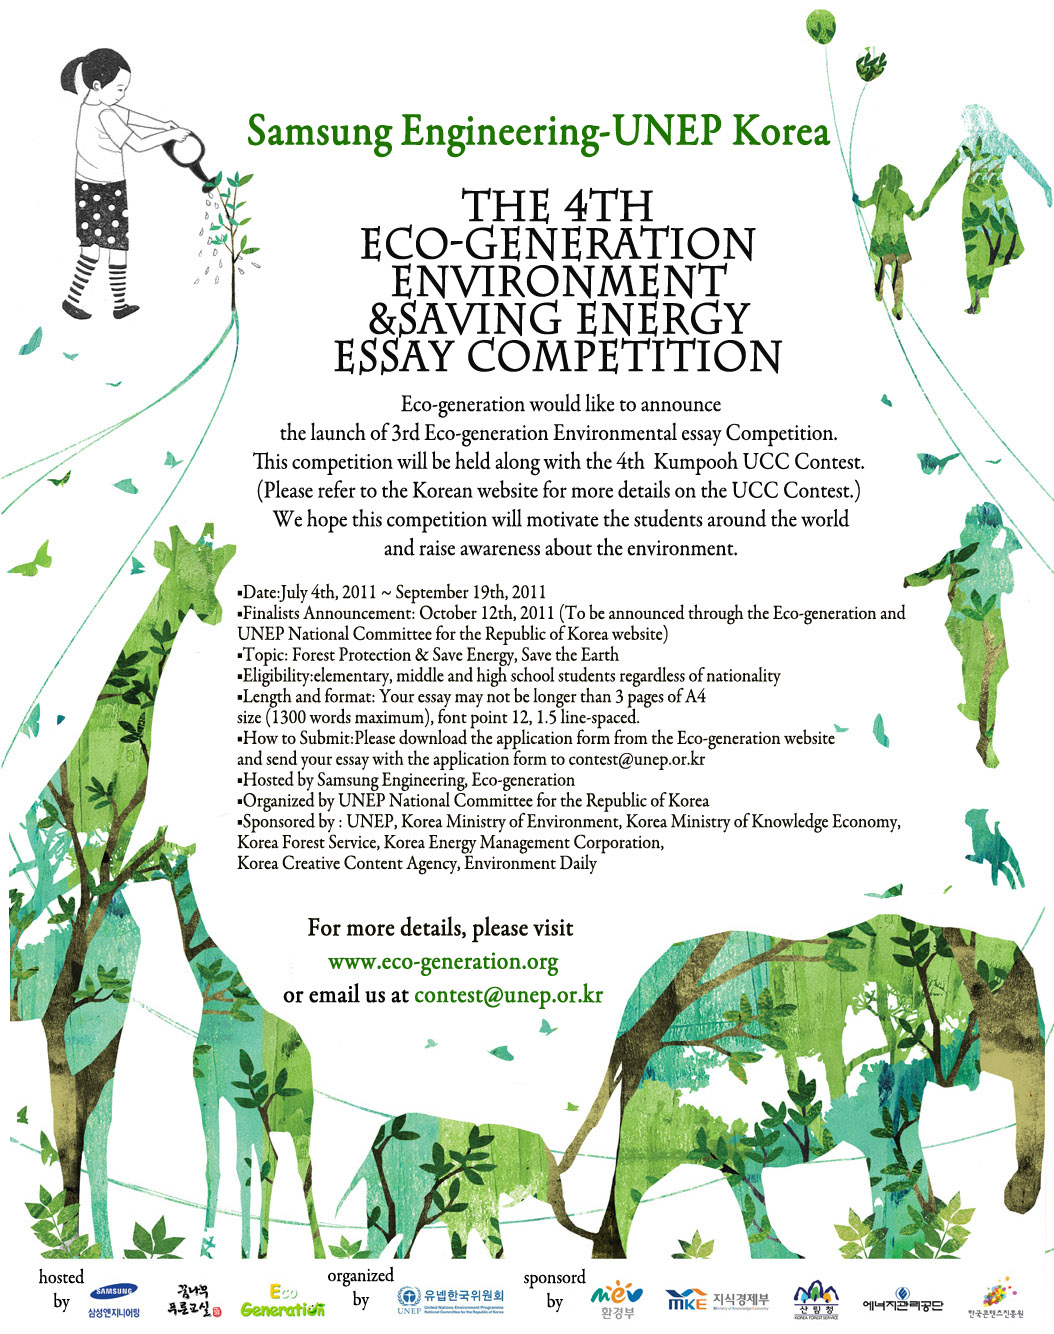 essay on competition essay competition network for a society essay  the th eco generation environmental essay competition samsung engineering unep korea the 4th eco generation environment